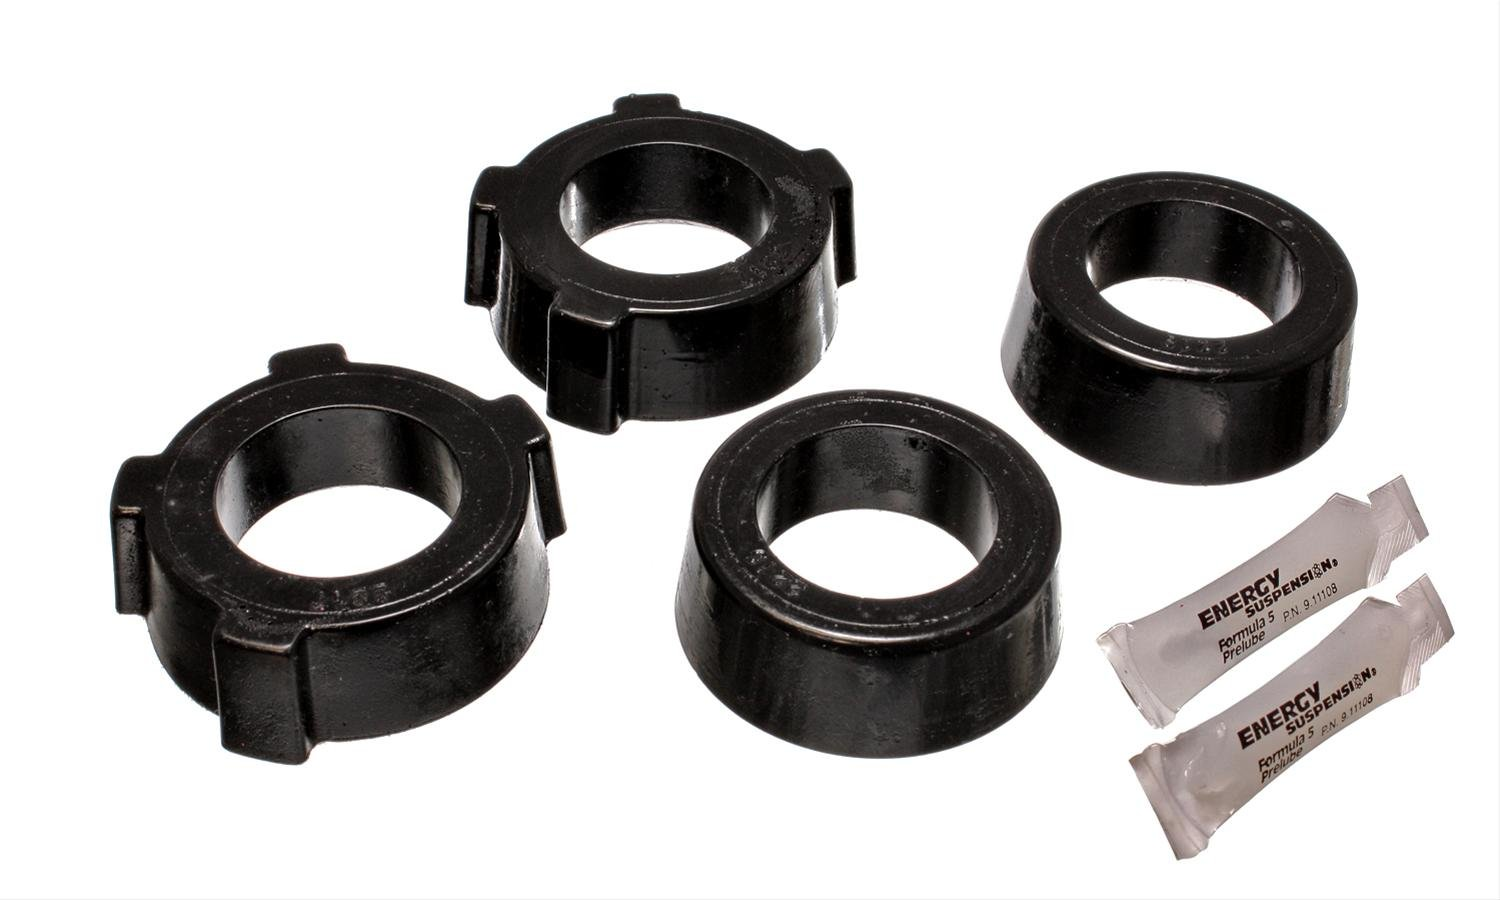 Energy Suspension 15.2109G VW SPRING PLATE BUSHING by Energy Suspension